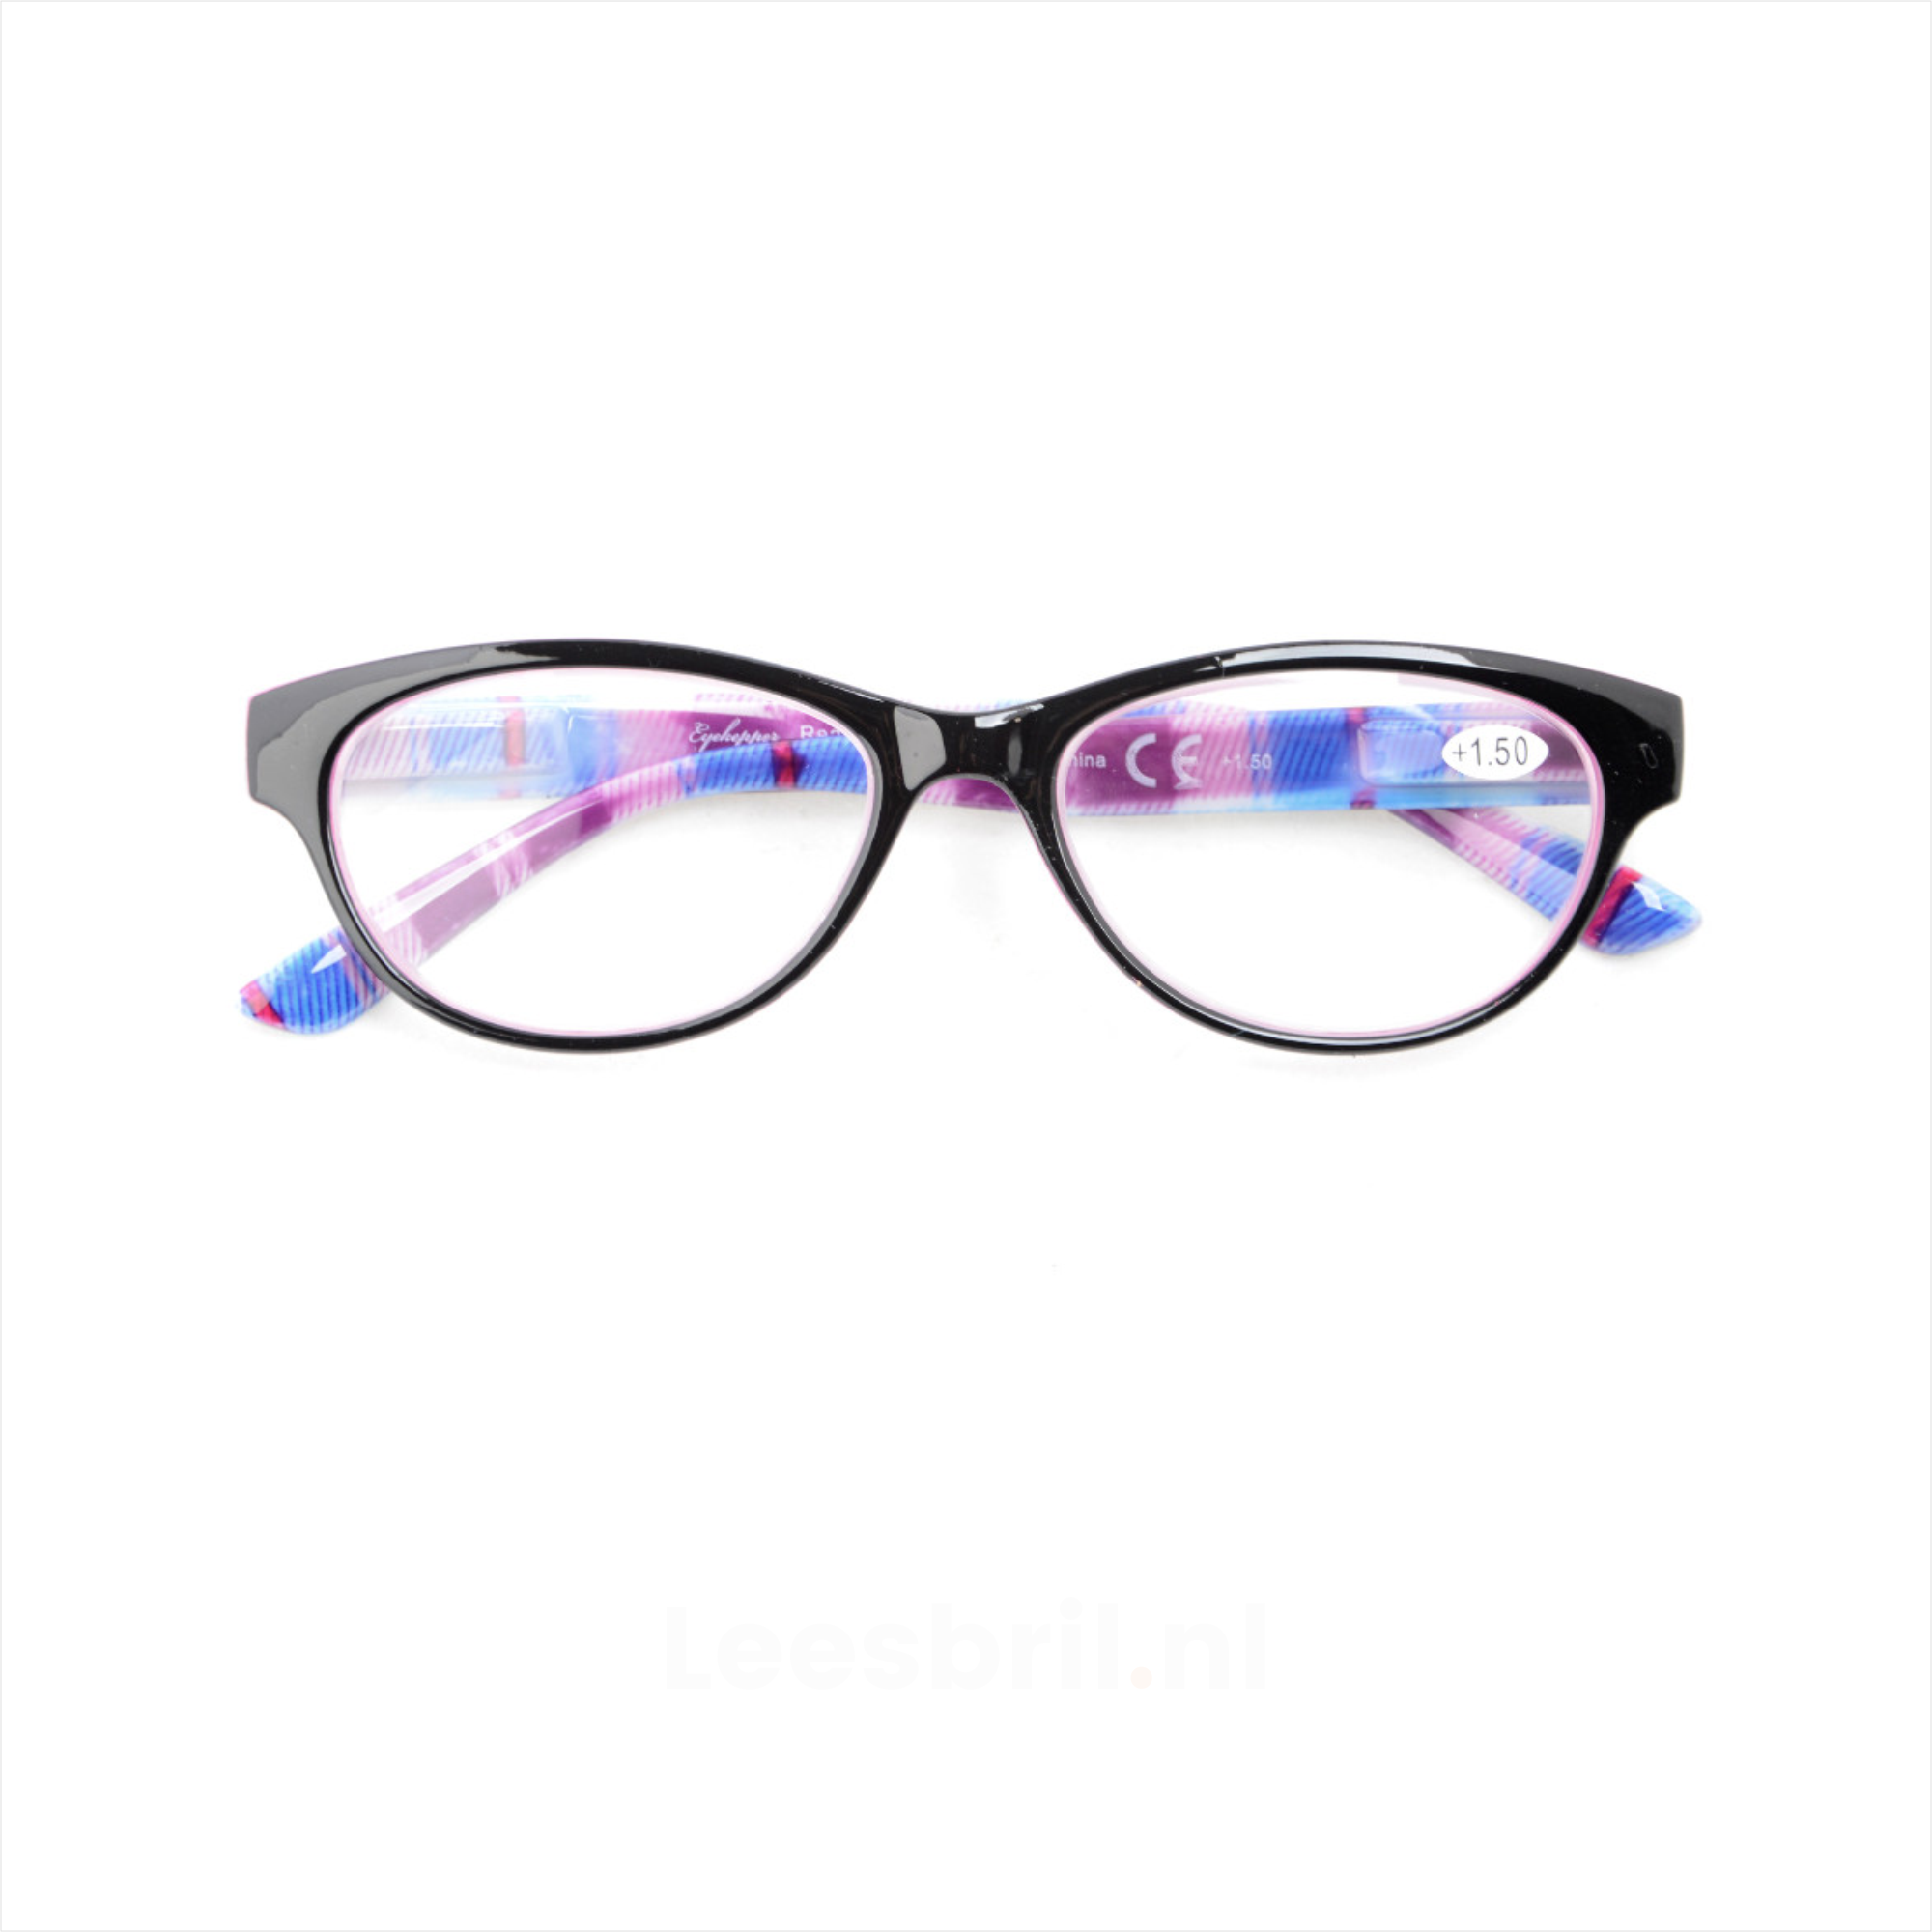 3a41220dee837f Asara. Retro Cat-Eye Dames Leesbril 5 leesbrillen set